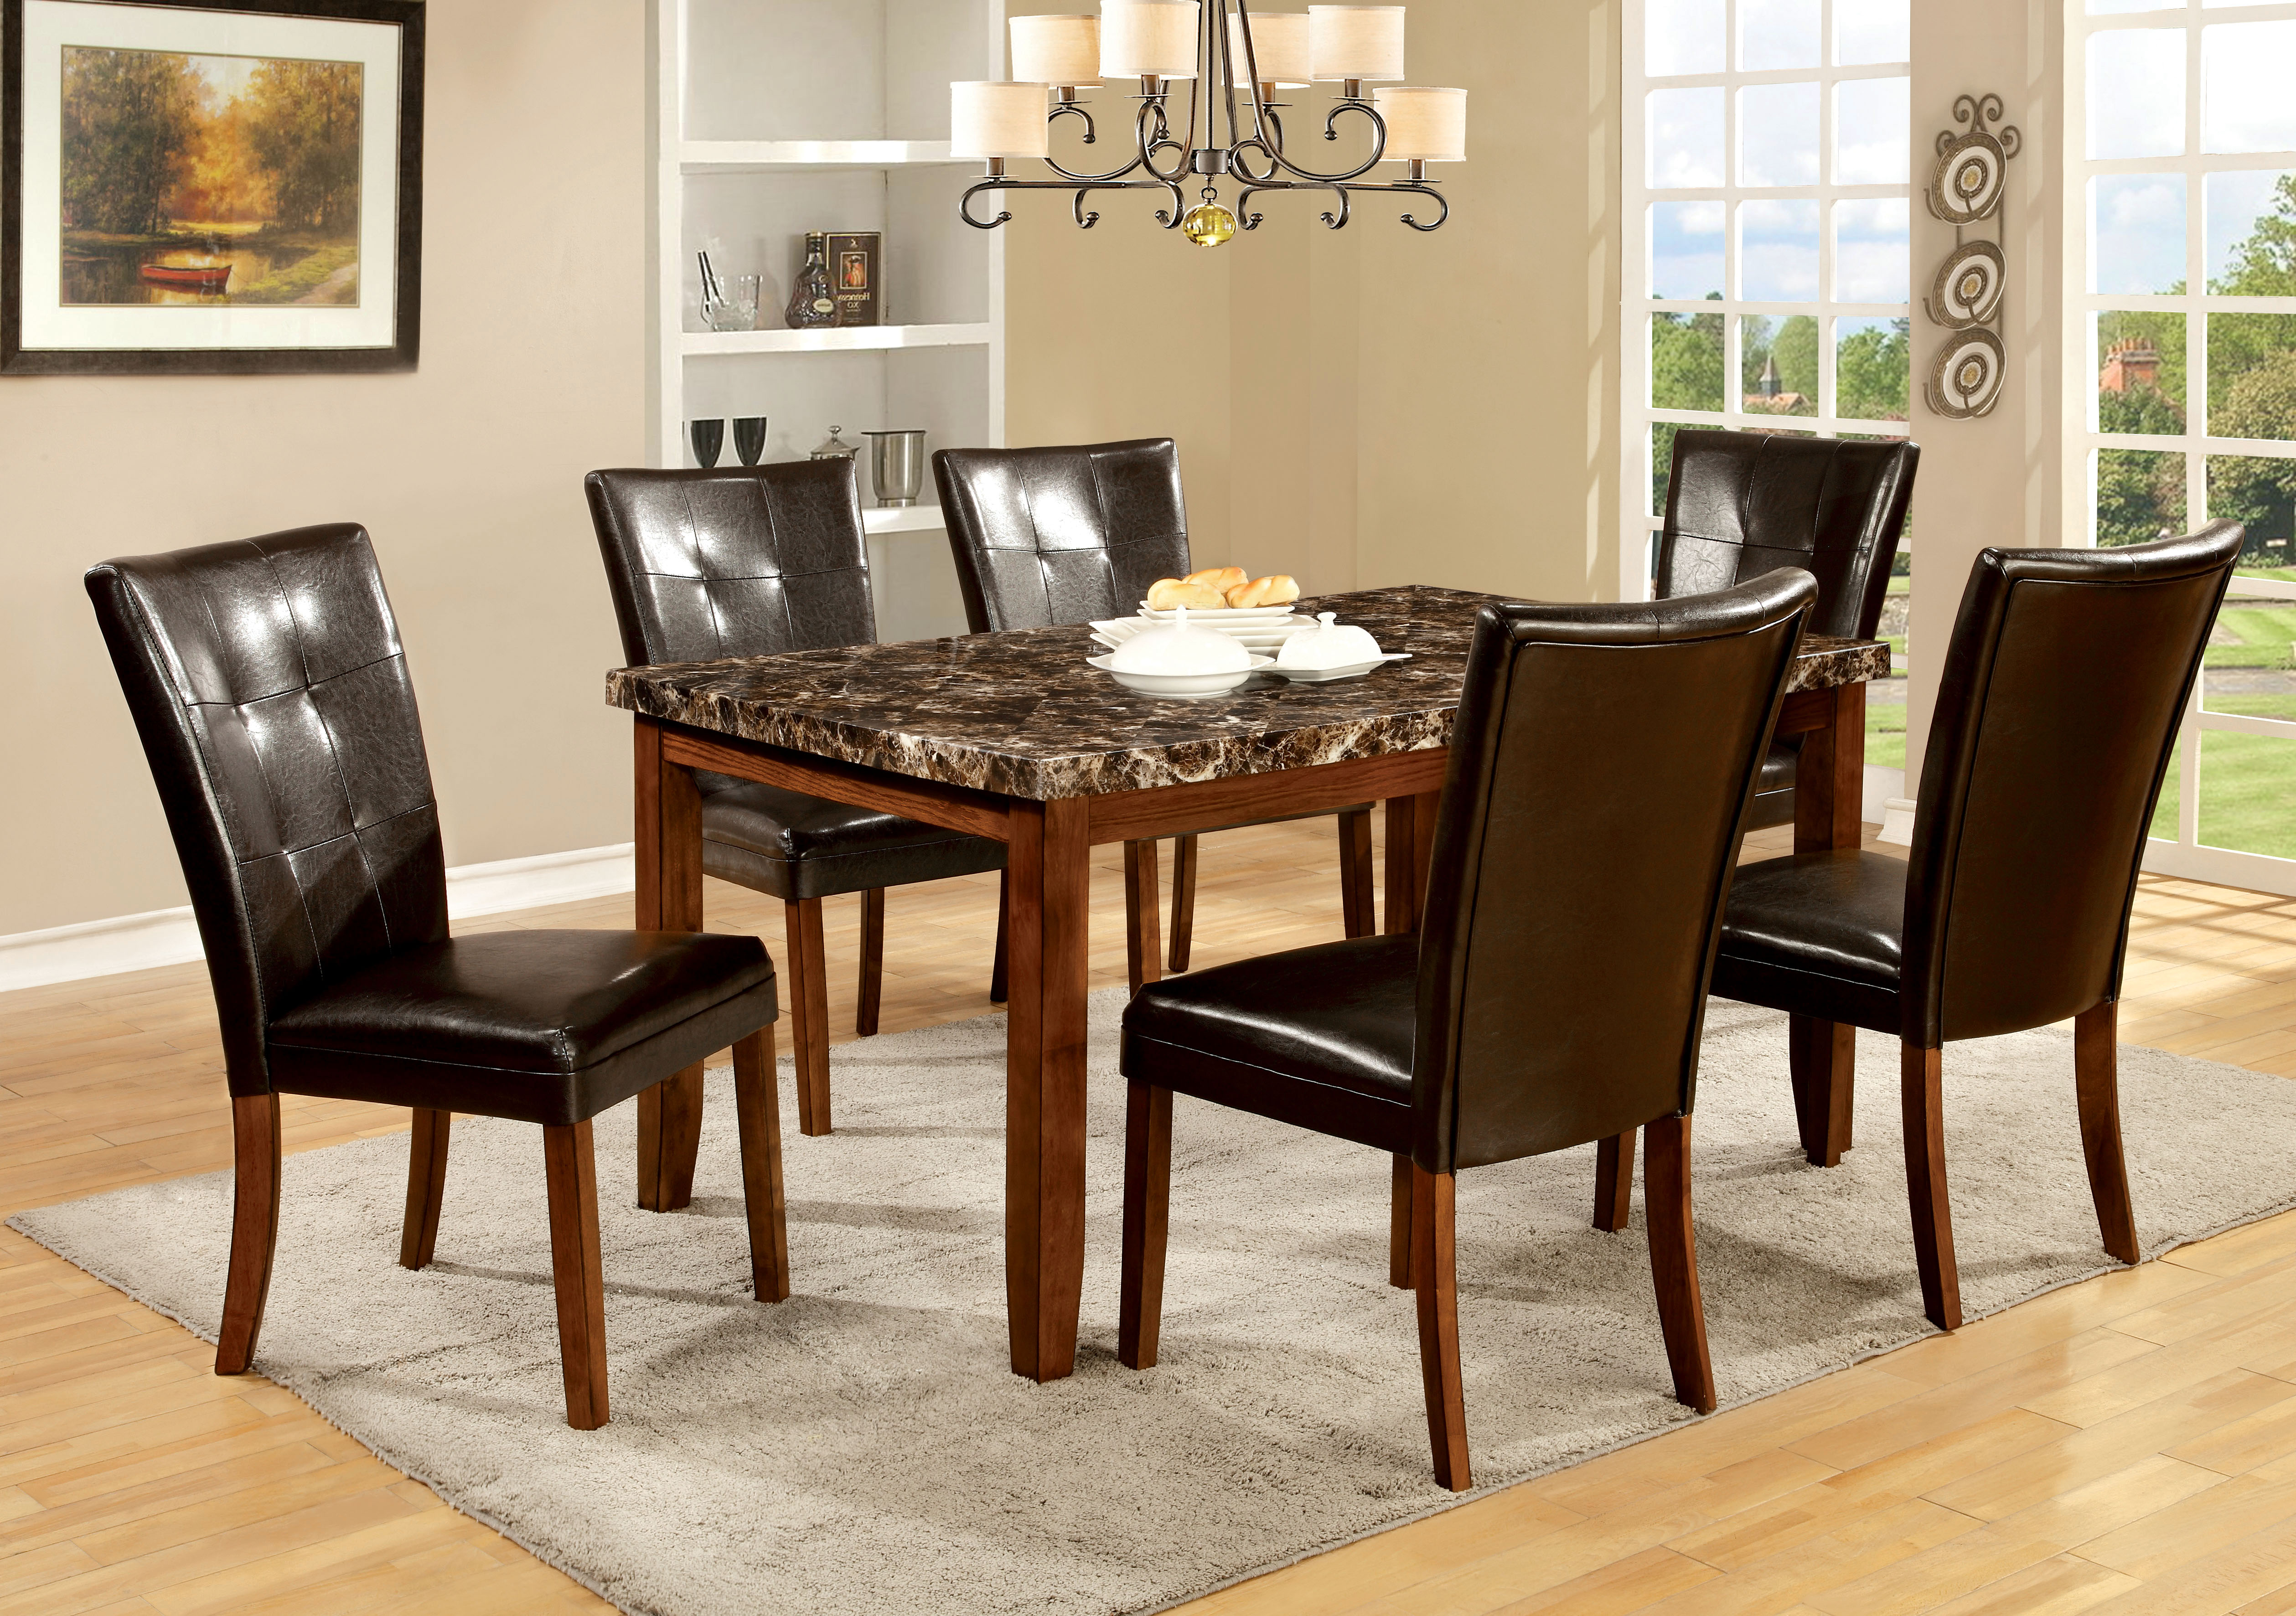 Antique wood dining tables furniture of america antique oak moralli faux marble top dining